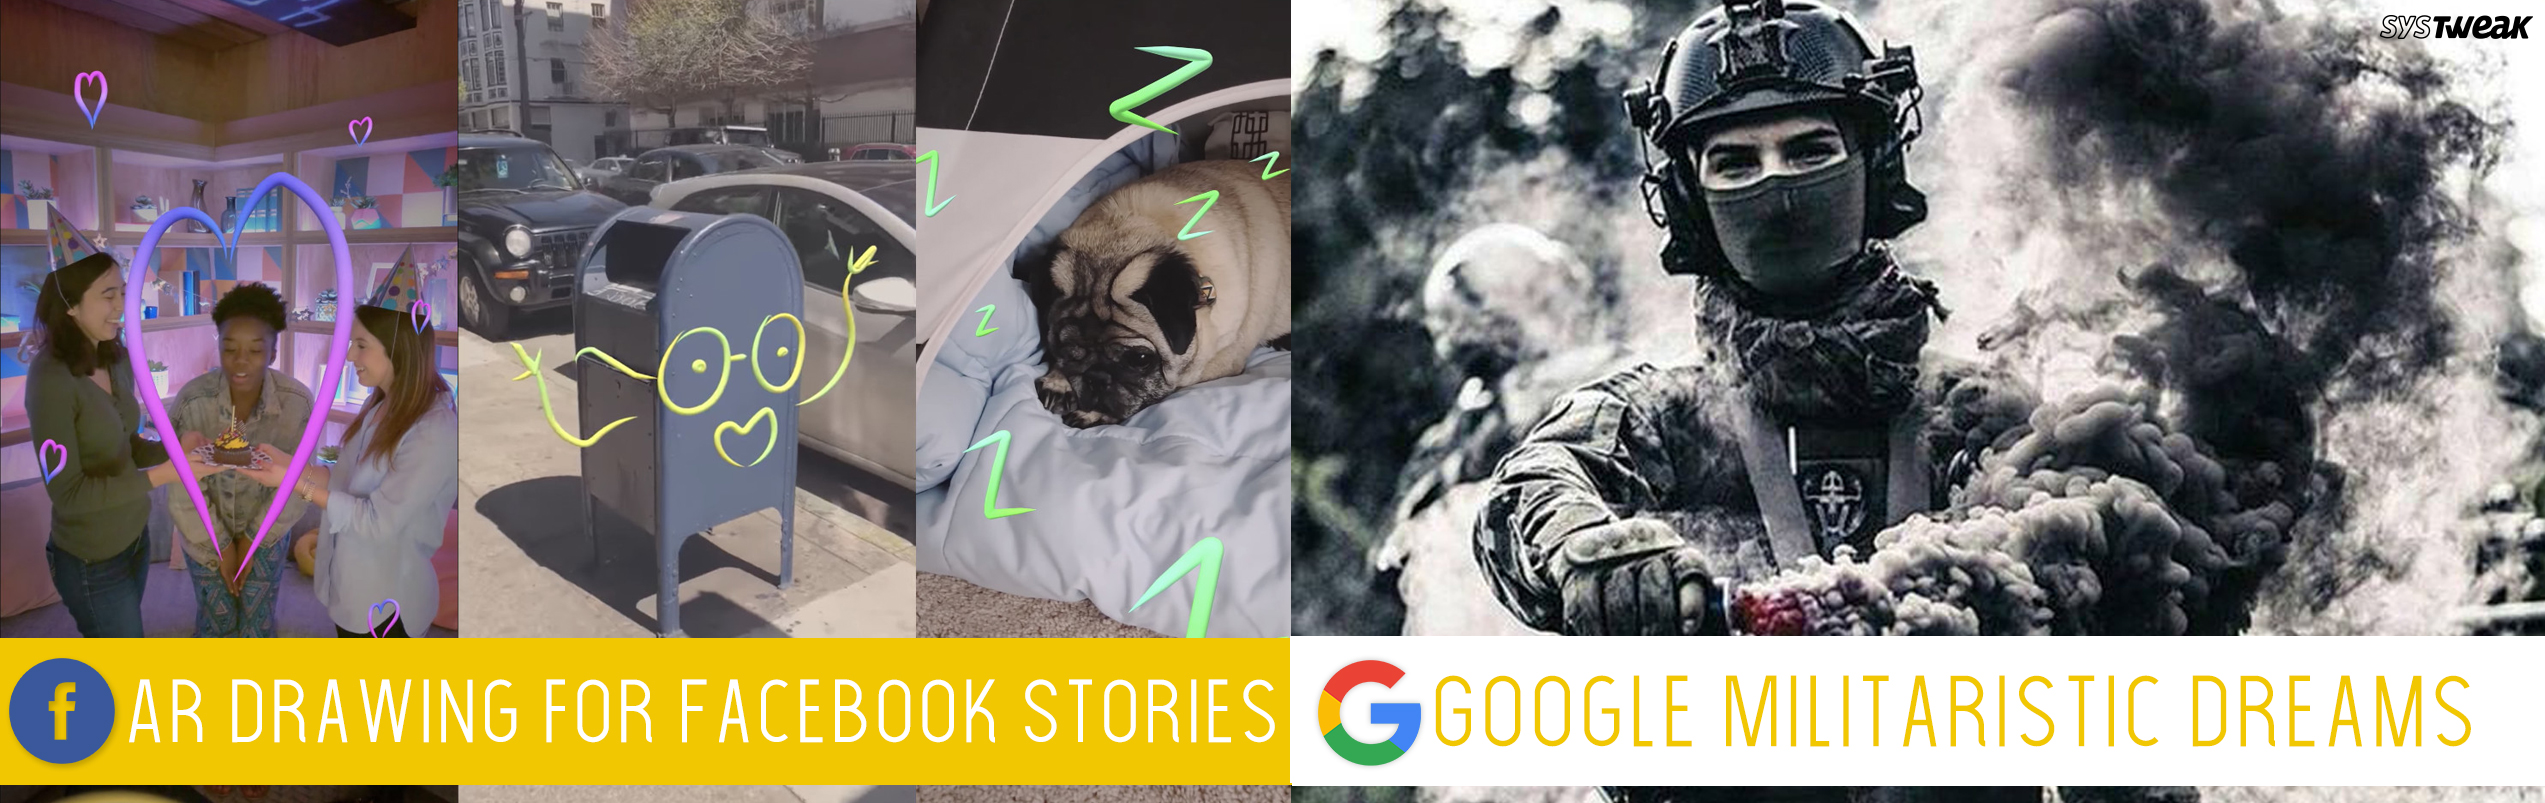 Newsletter: Facebook Stories Gets New Addition & AI and the Military Cloud Is What Interests Google